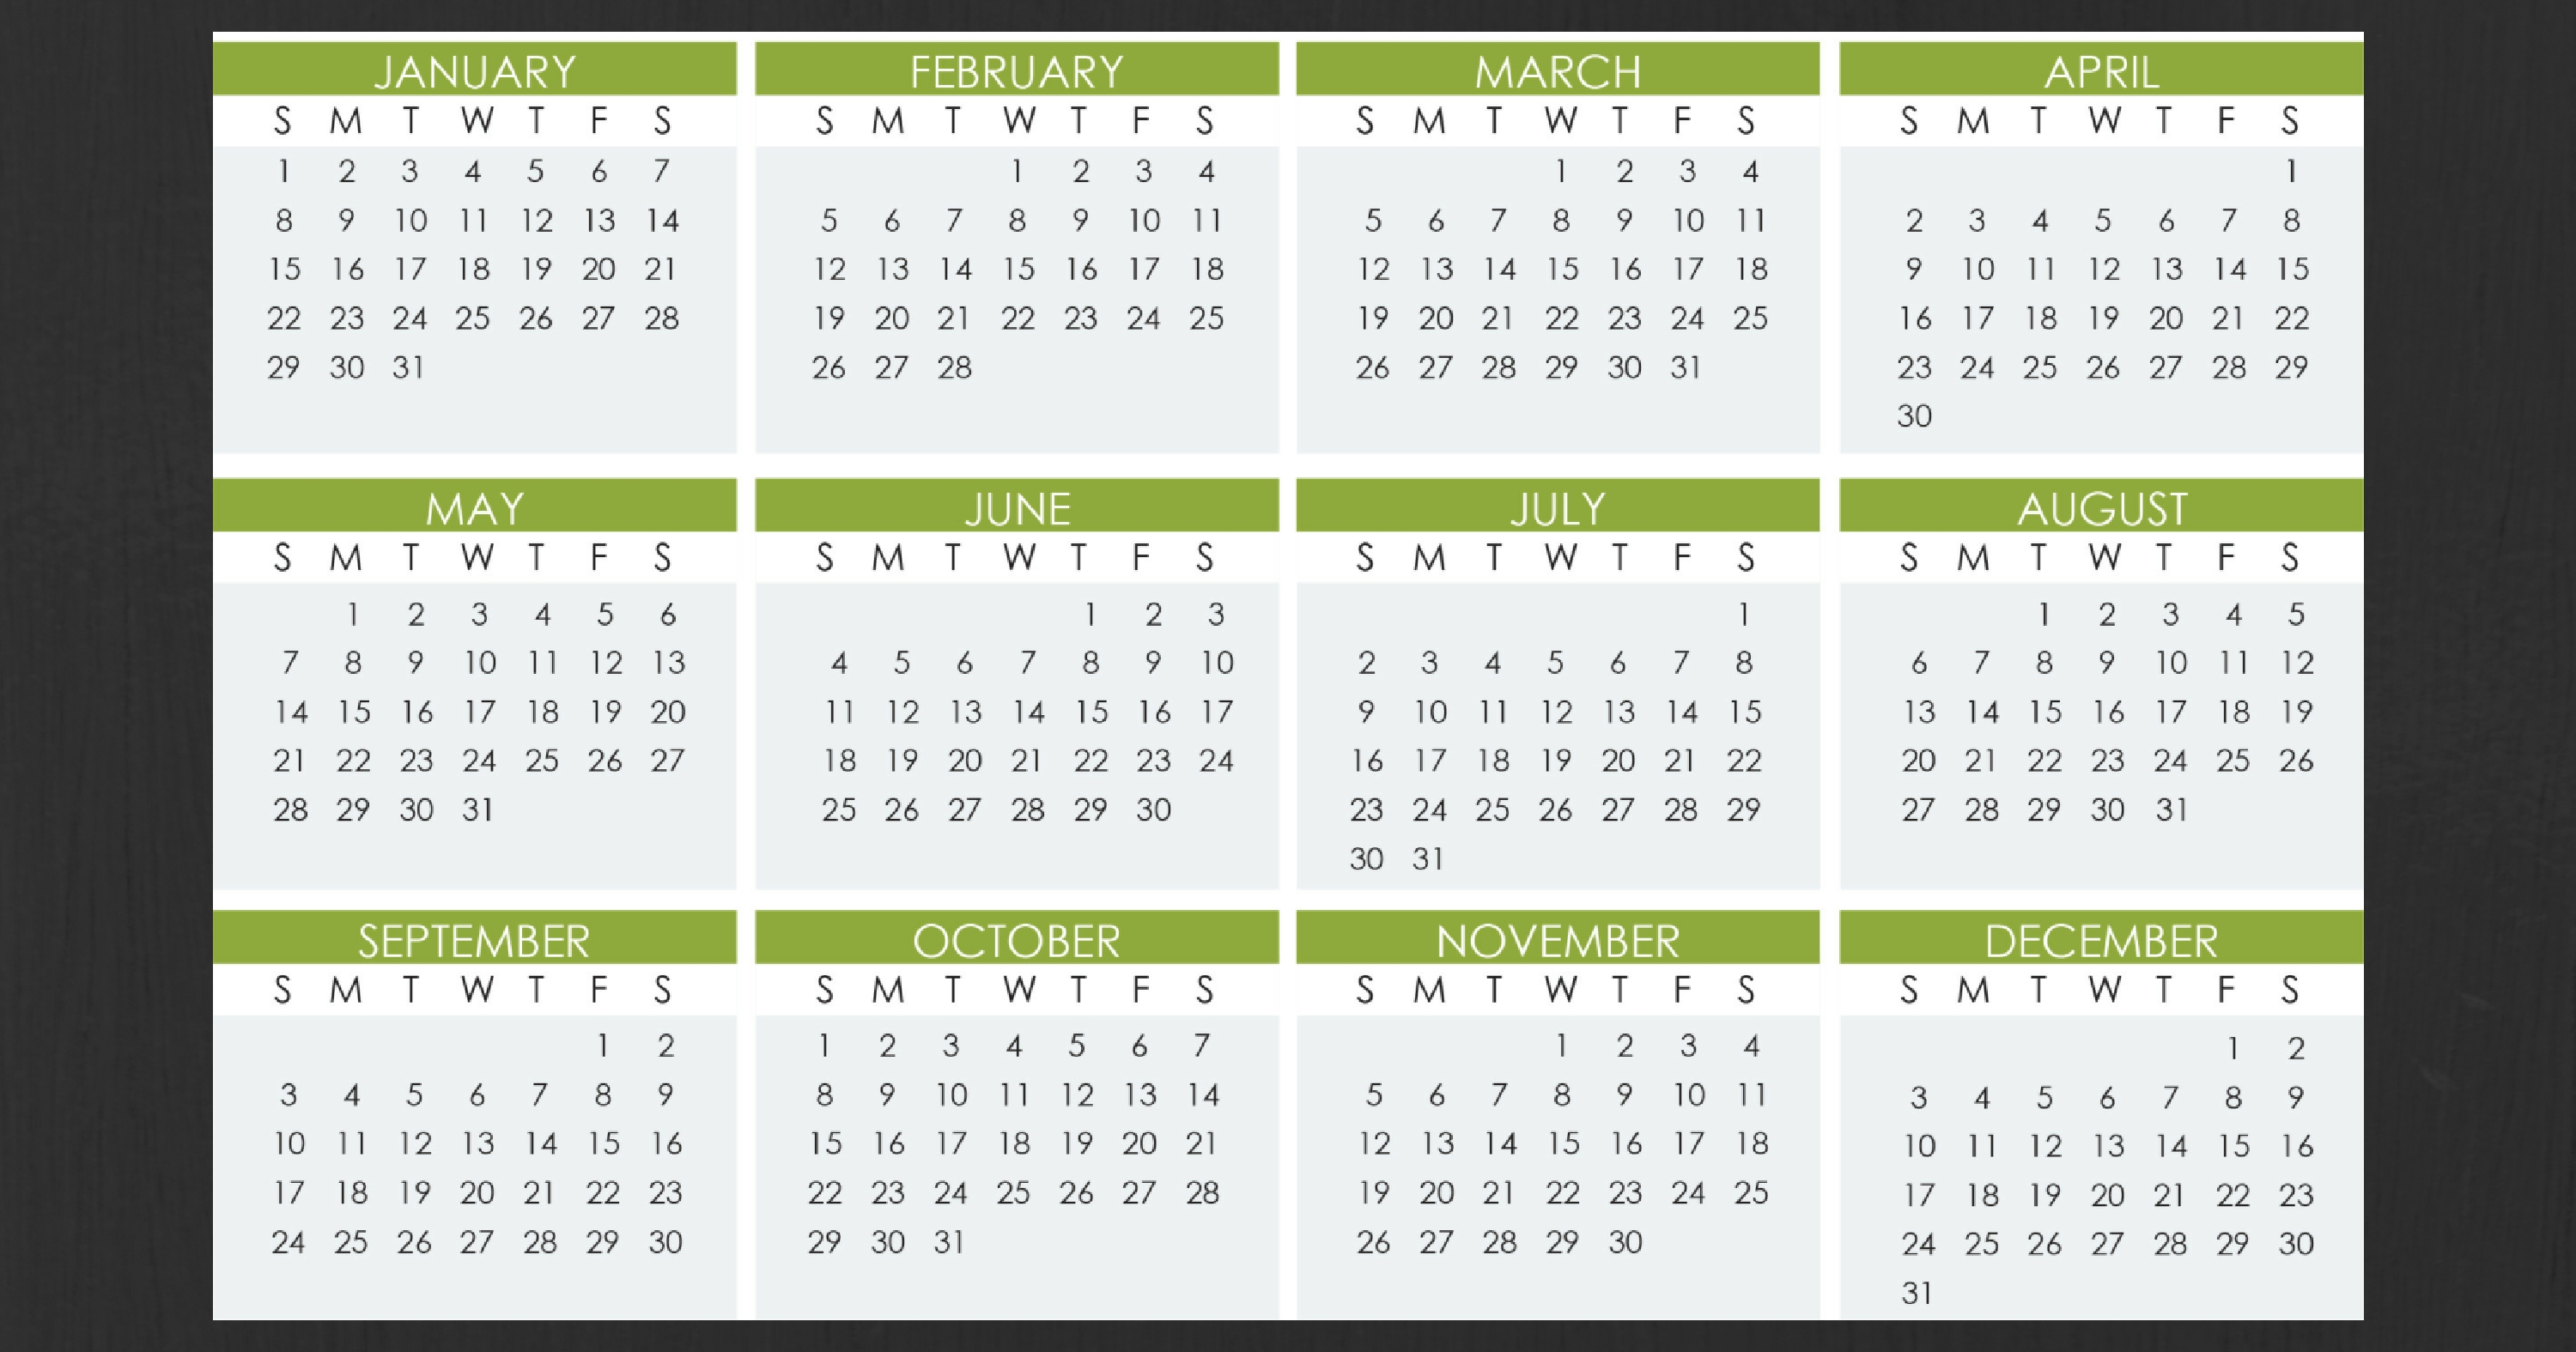 Stay Organized Next Year With Our 2017 Calendar And Tax